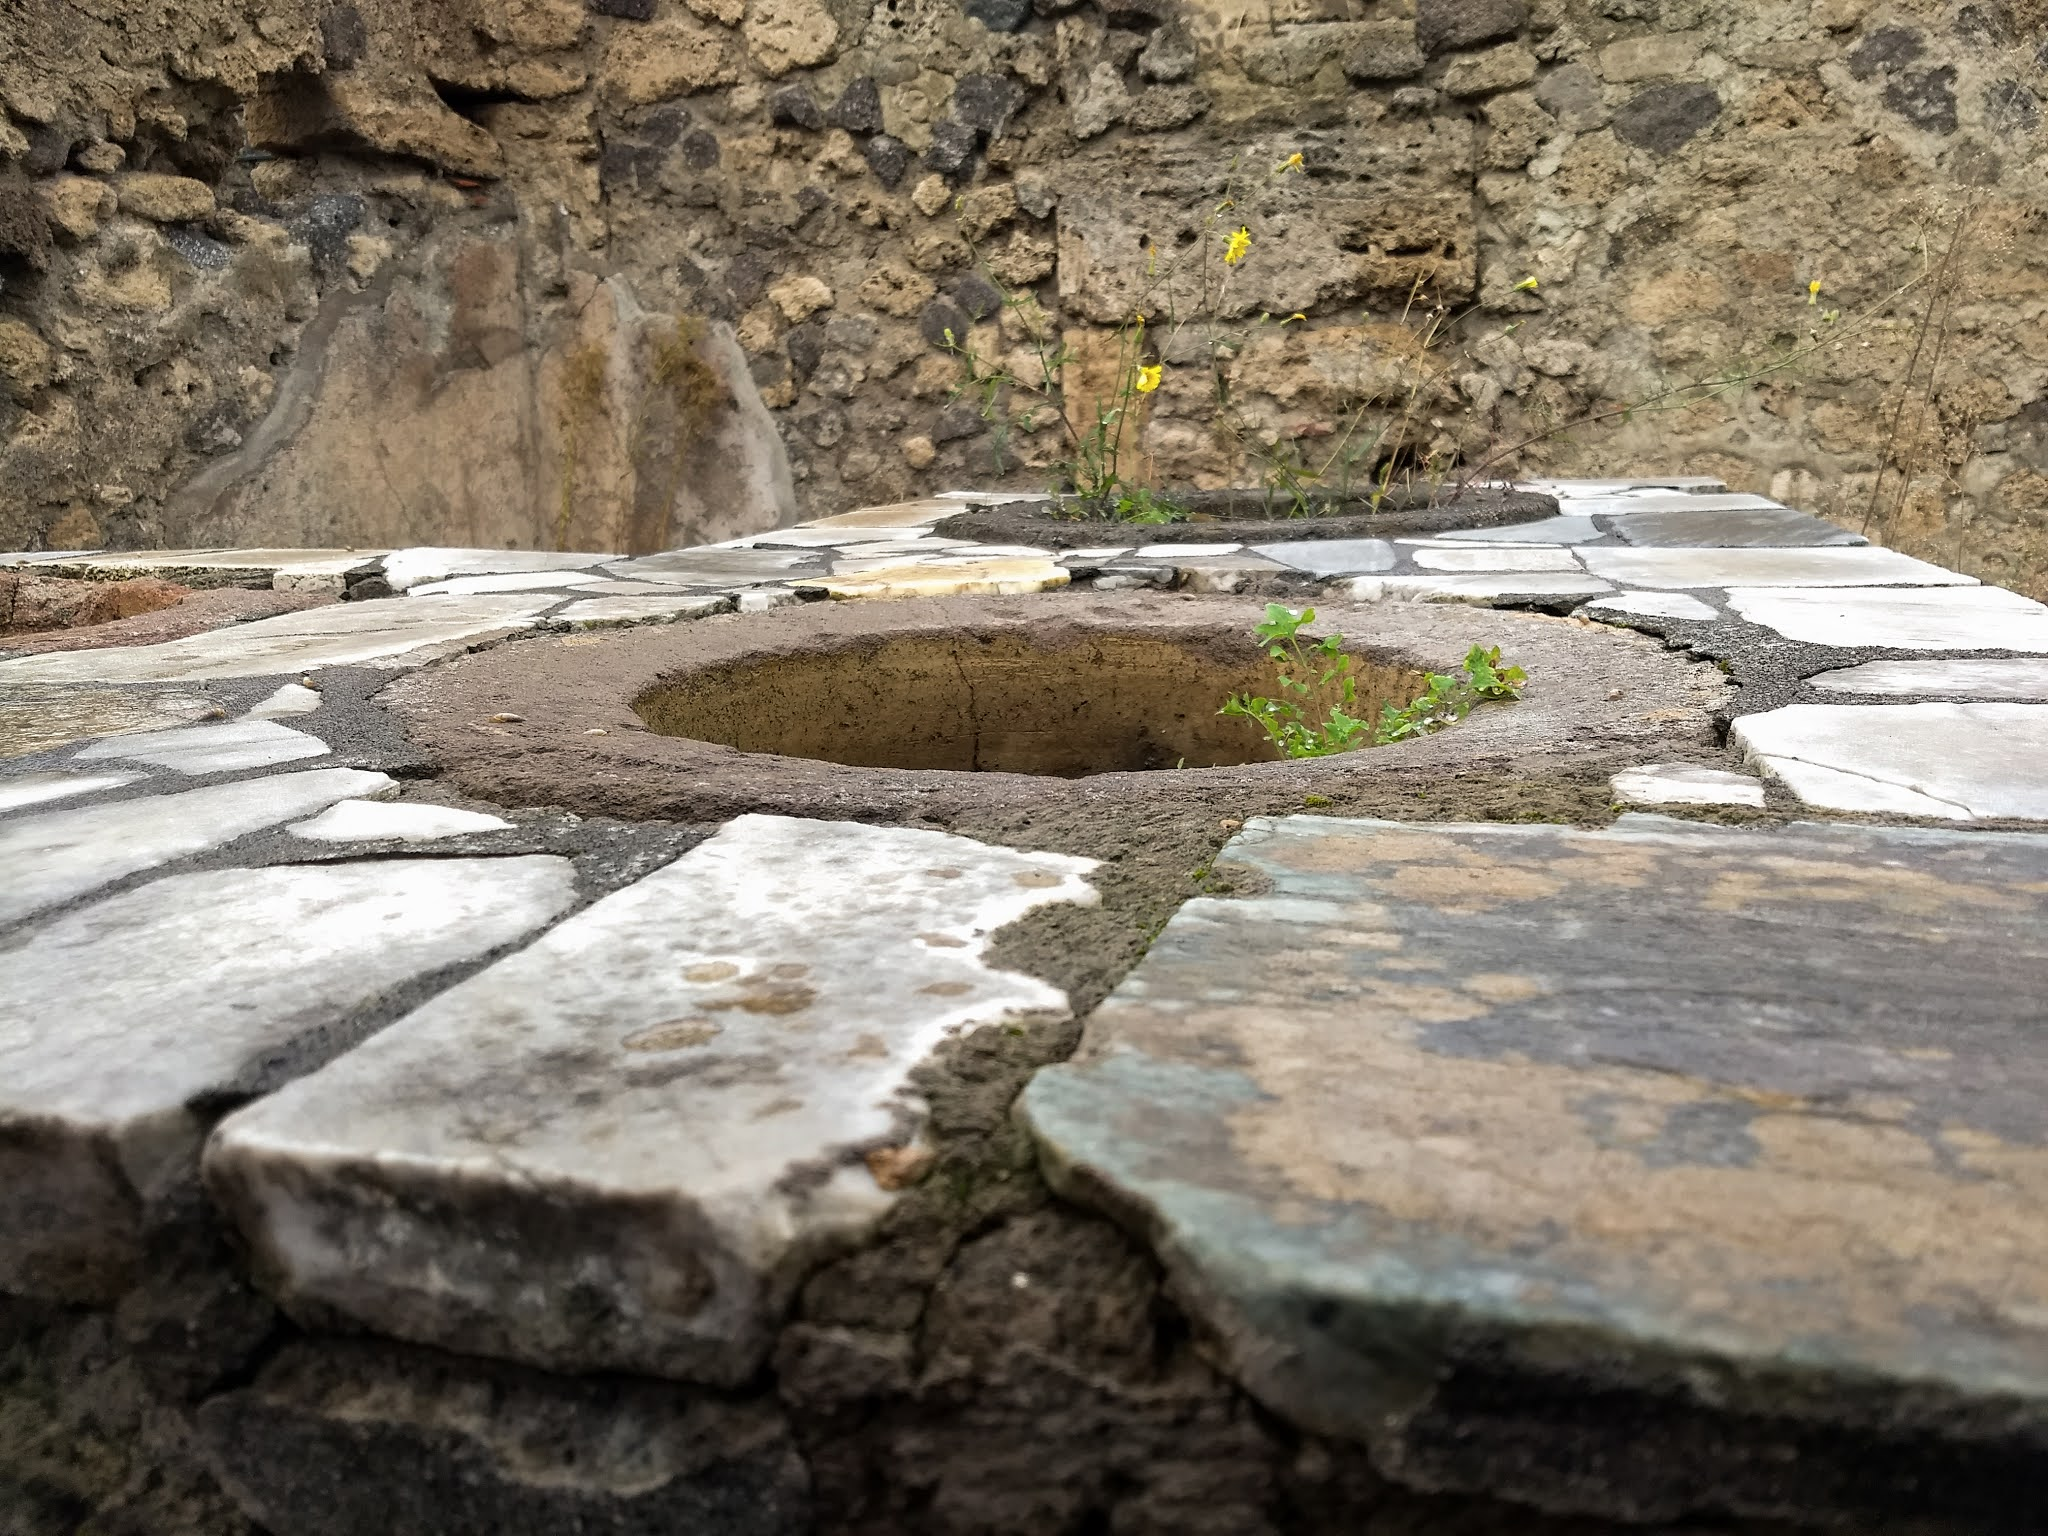 Close up of an ancient thermopolium stone stove in Pompeii